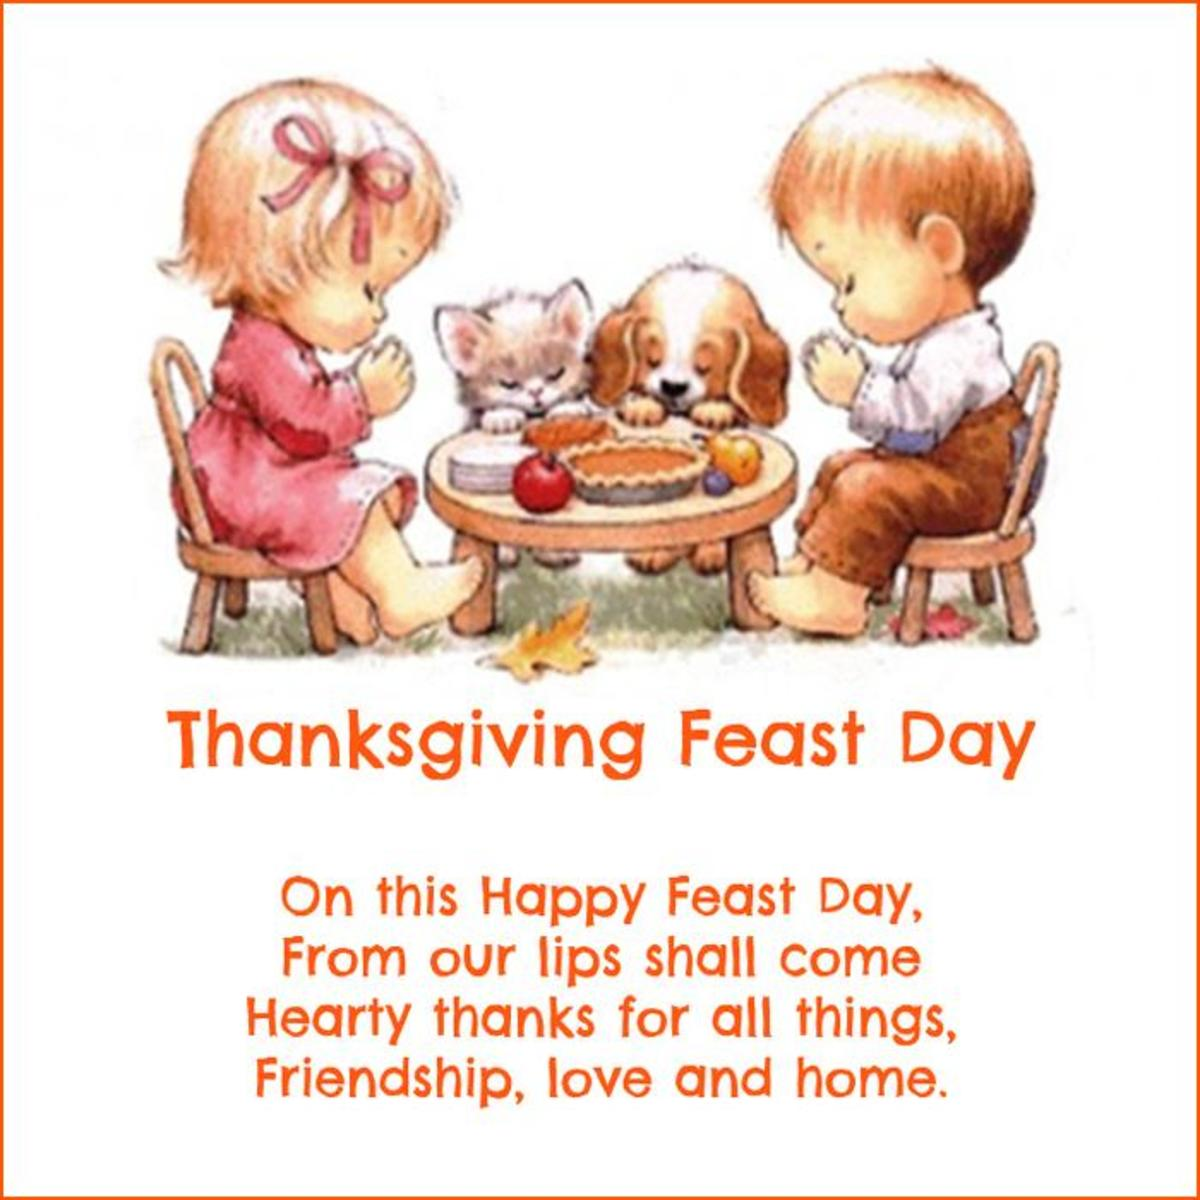 A Thanksgiving Feast Day Poem